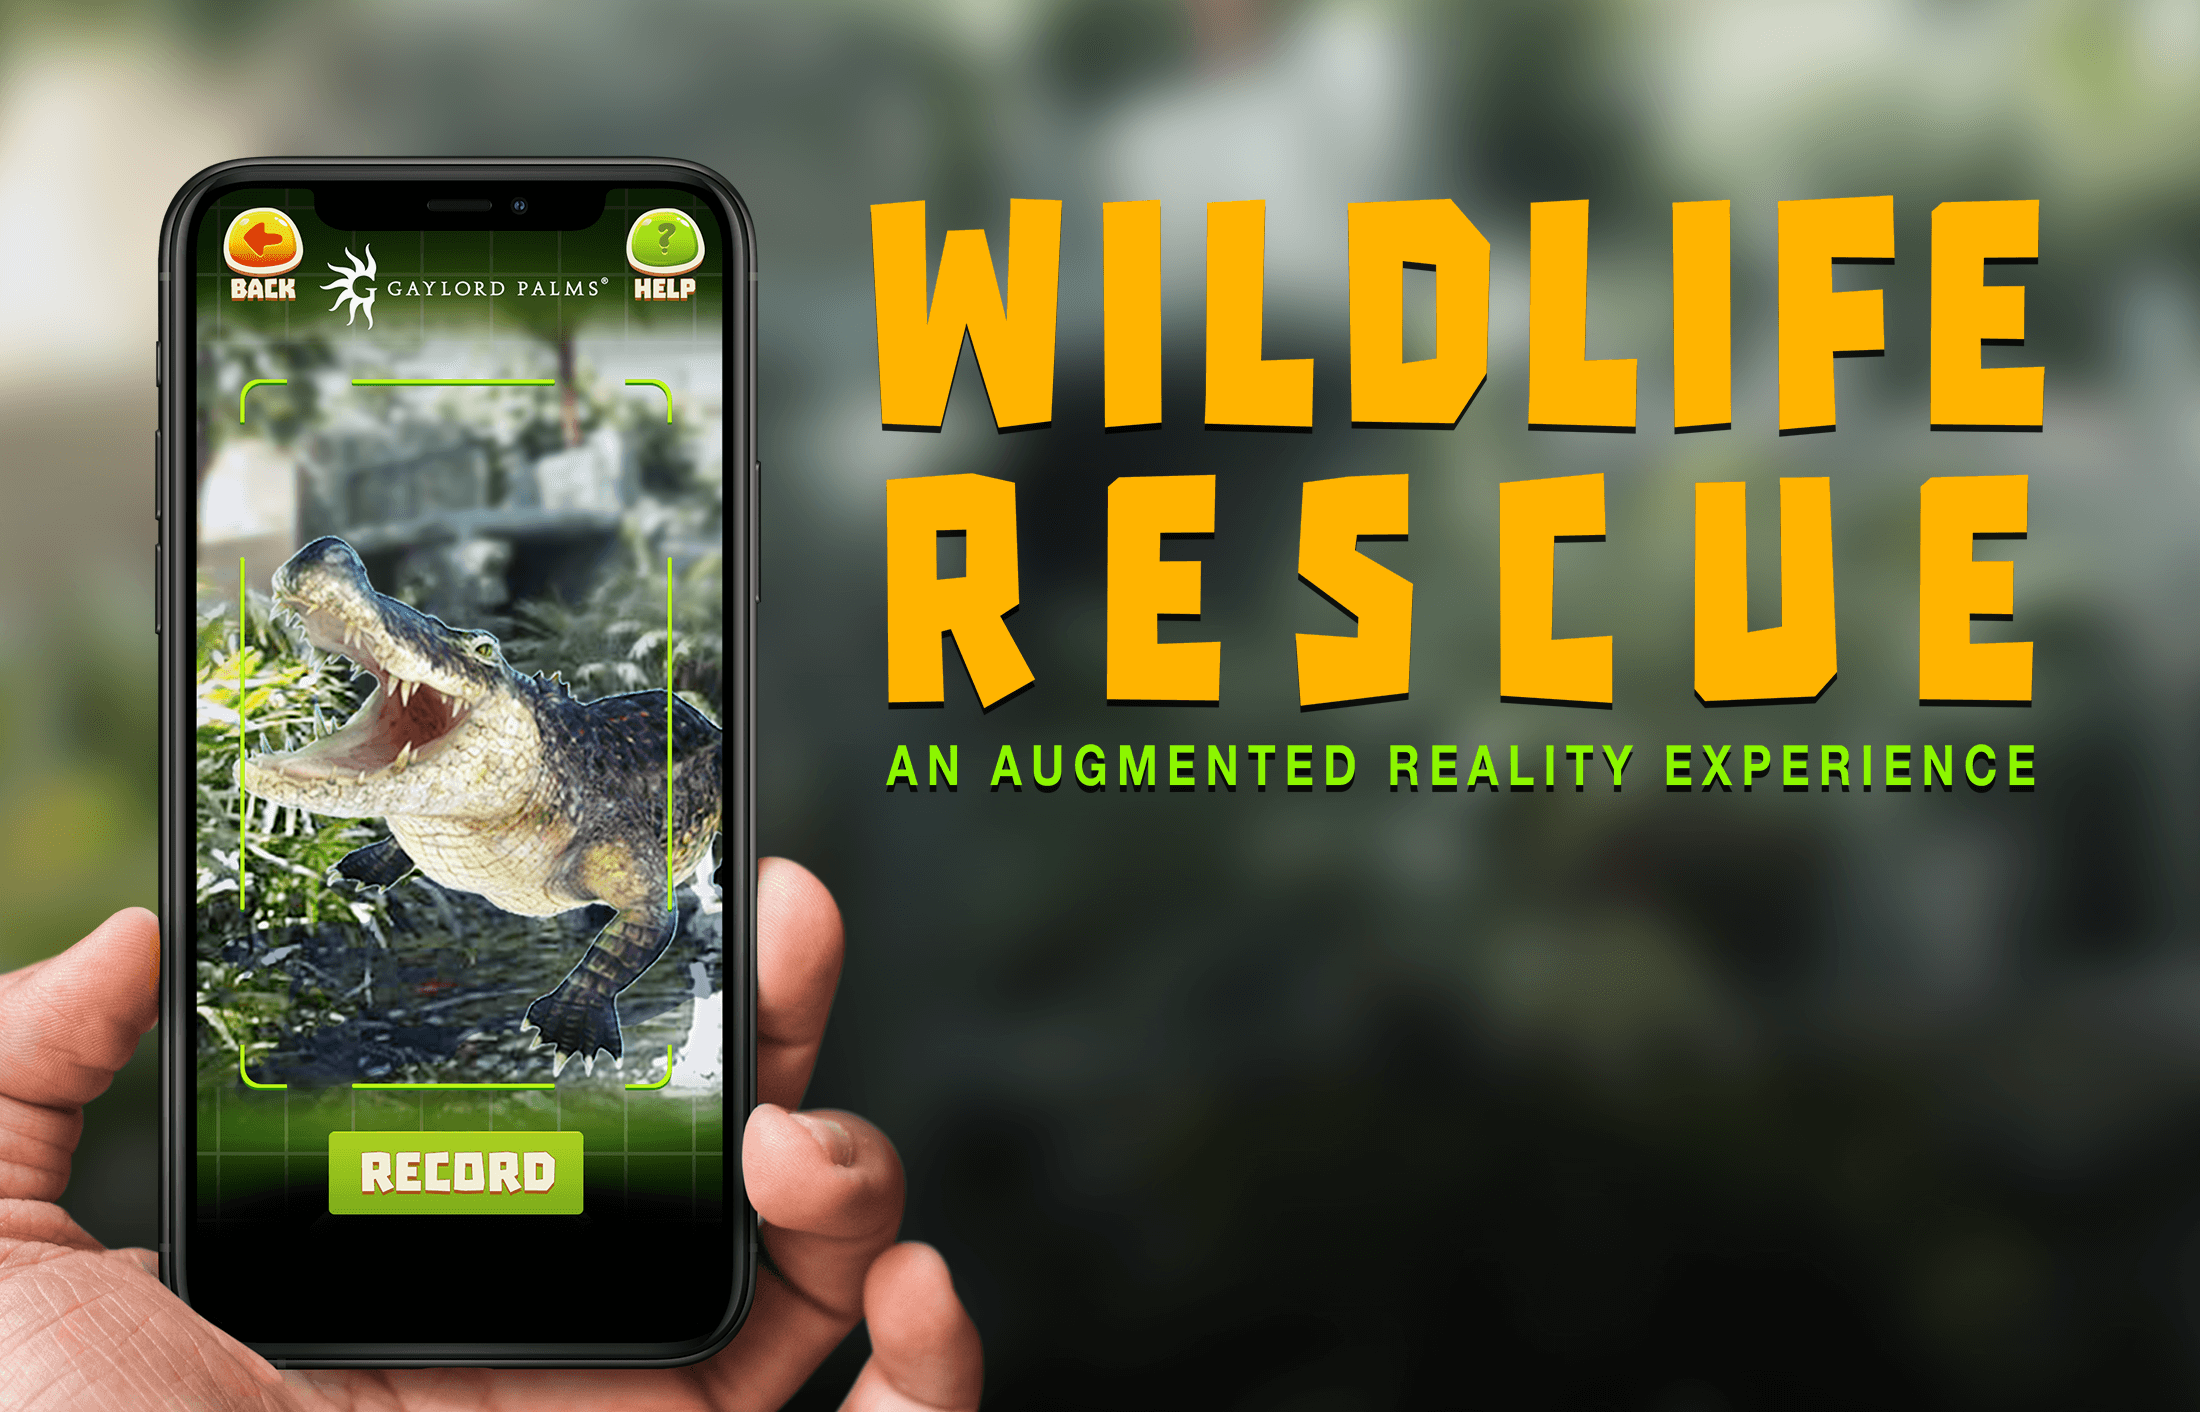 Gaylord Hotels: Wildlife Rescue